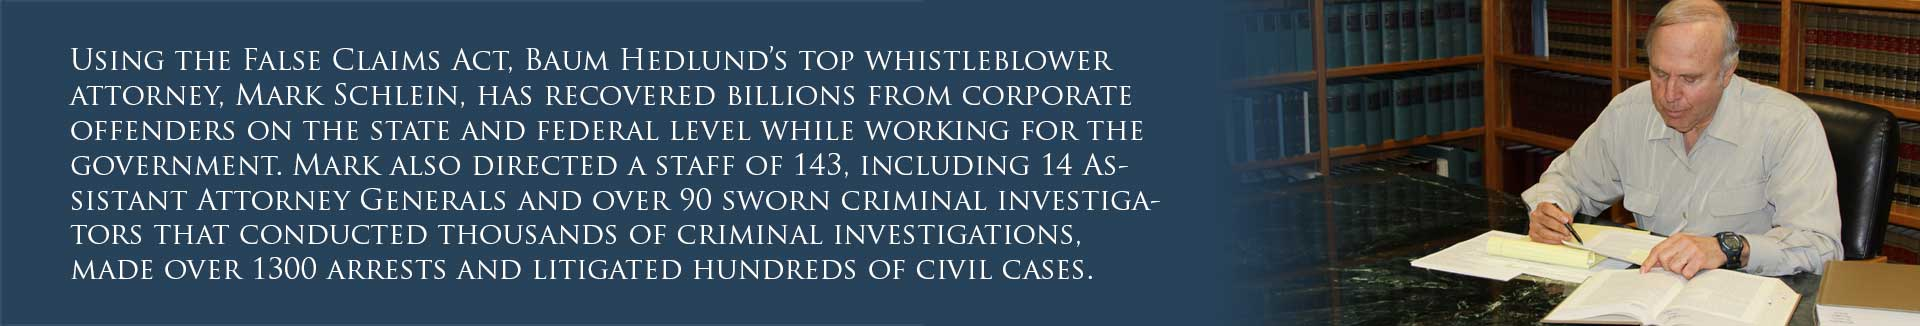 Using the False Claims Act, Mark Schlein recovered billions from corporate offenders on the state and federal level.